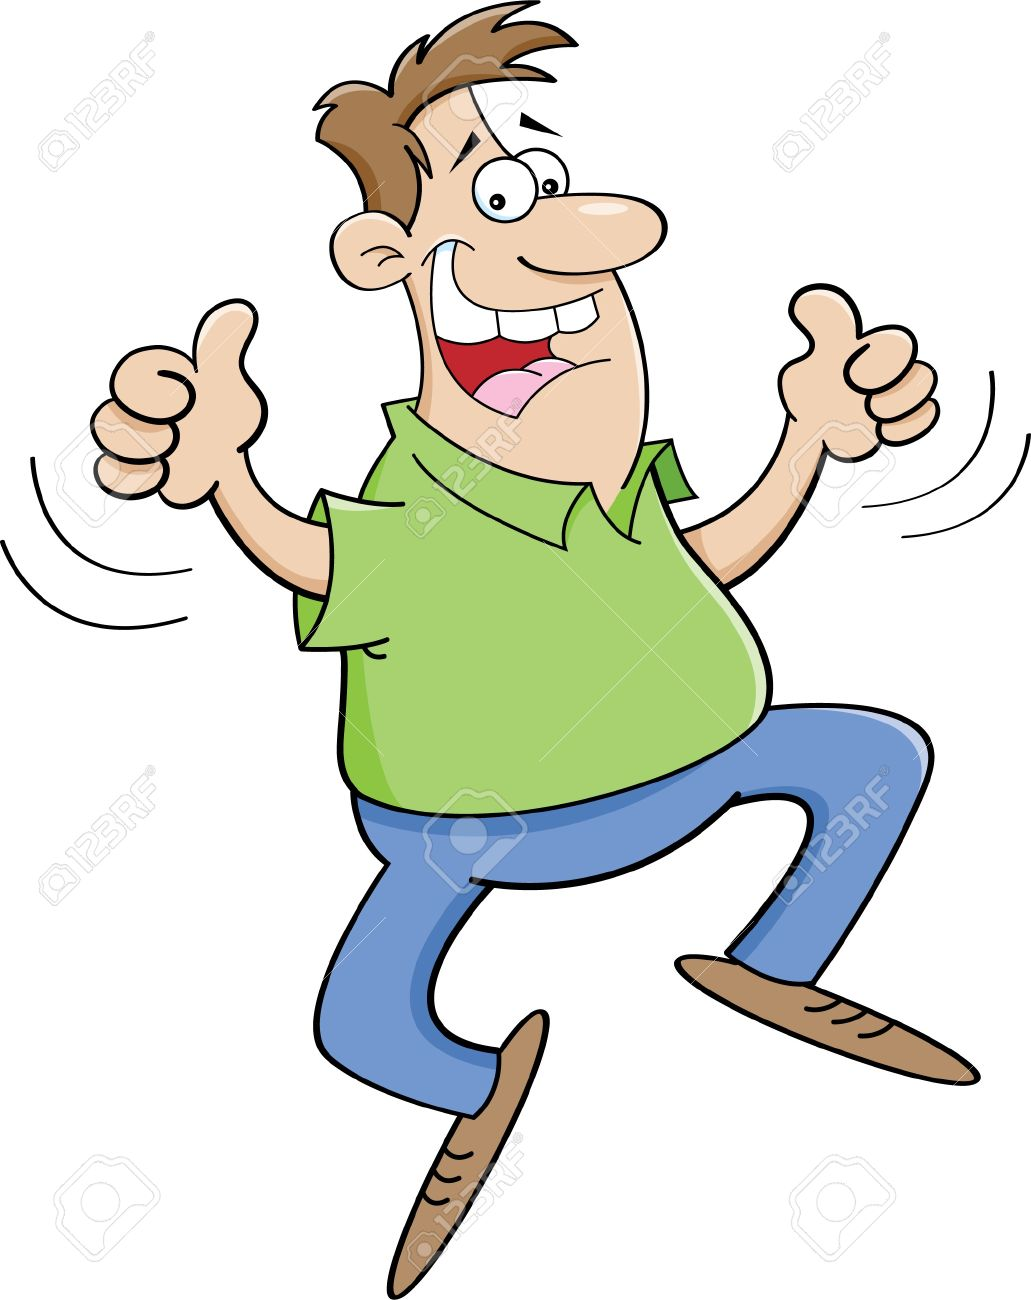 Man thumbs up clipart jpg freeuse download Cartoon Illustration Of A Man Jumping With Thumbs Up Royalty Free ... jpg freeuse download